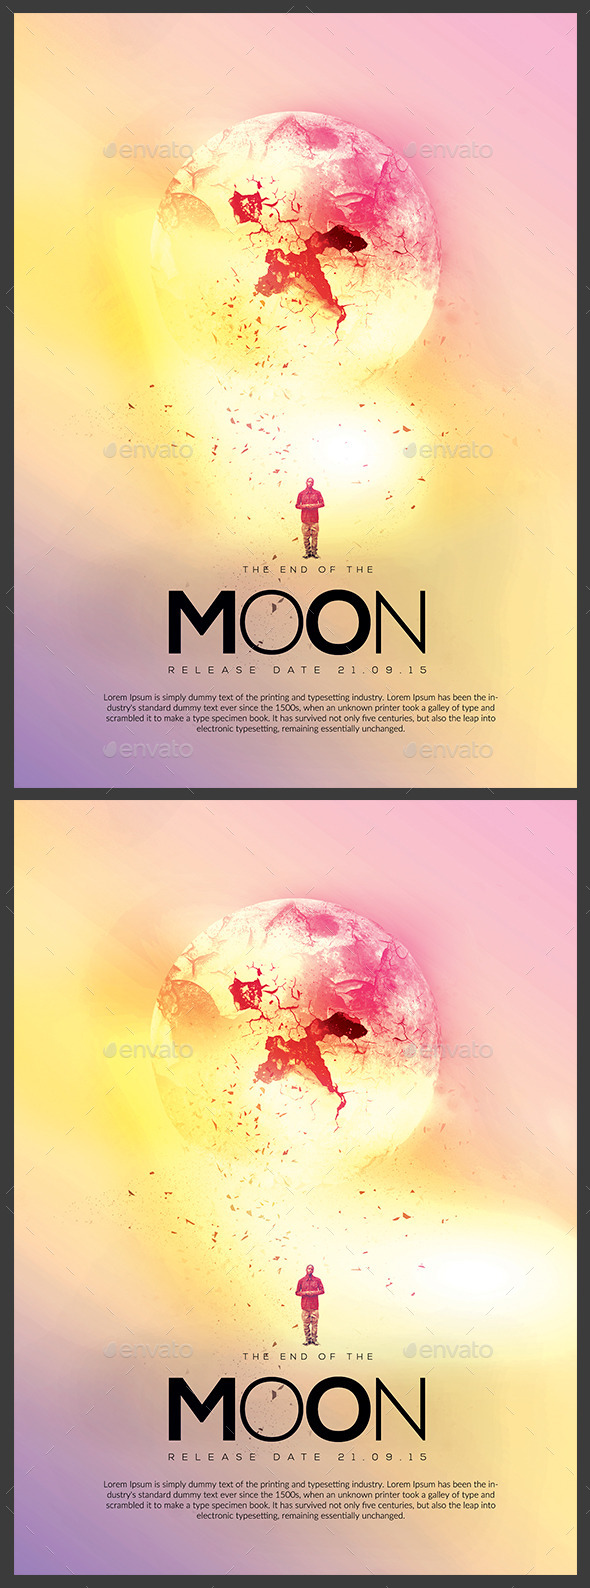 The End of the Moon Flyer Poster